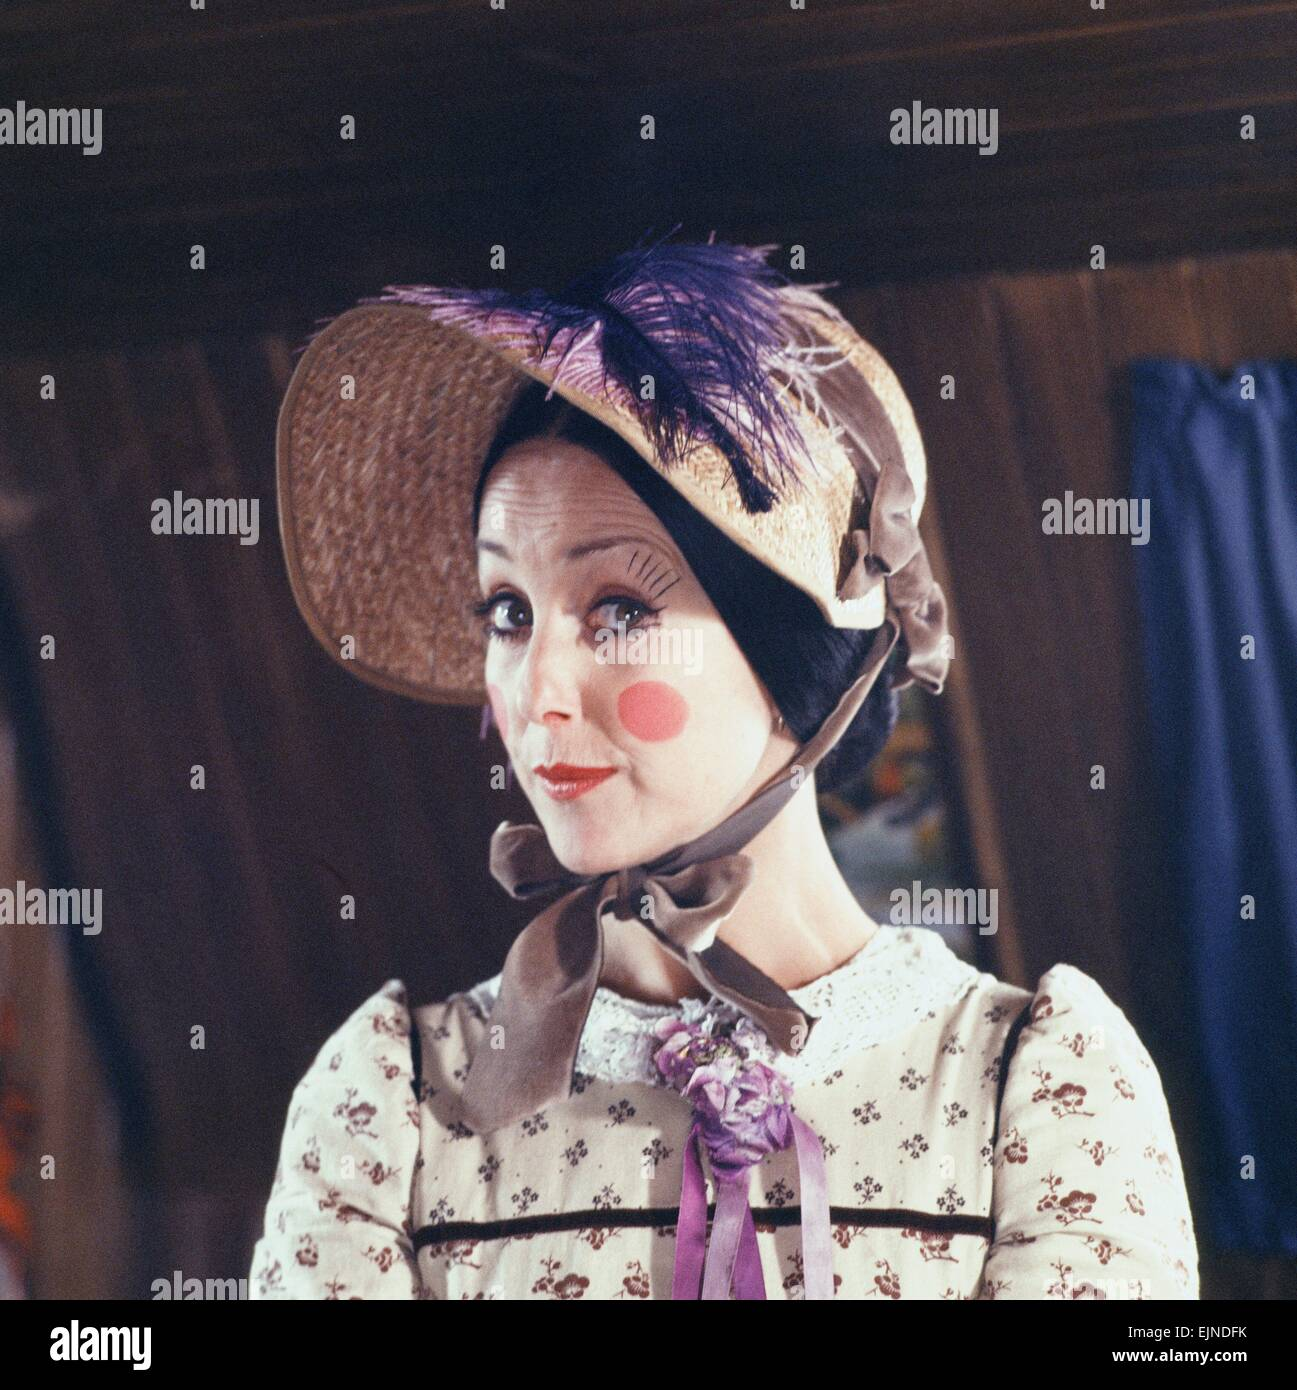 Actress Una Stubb as Aunt Sally in the Southern Television series of Worzel Gummidge. Aunt  sc 1 st  Alamy & Aunt Sally Gummidge Stock Photos u0026 Aunt Sally Gummidge Stock Images ...